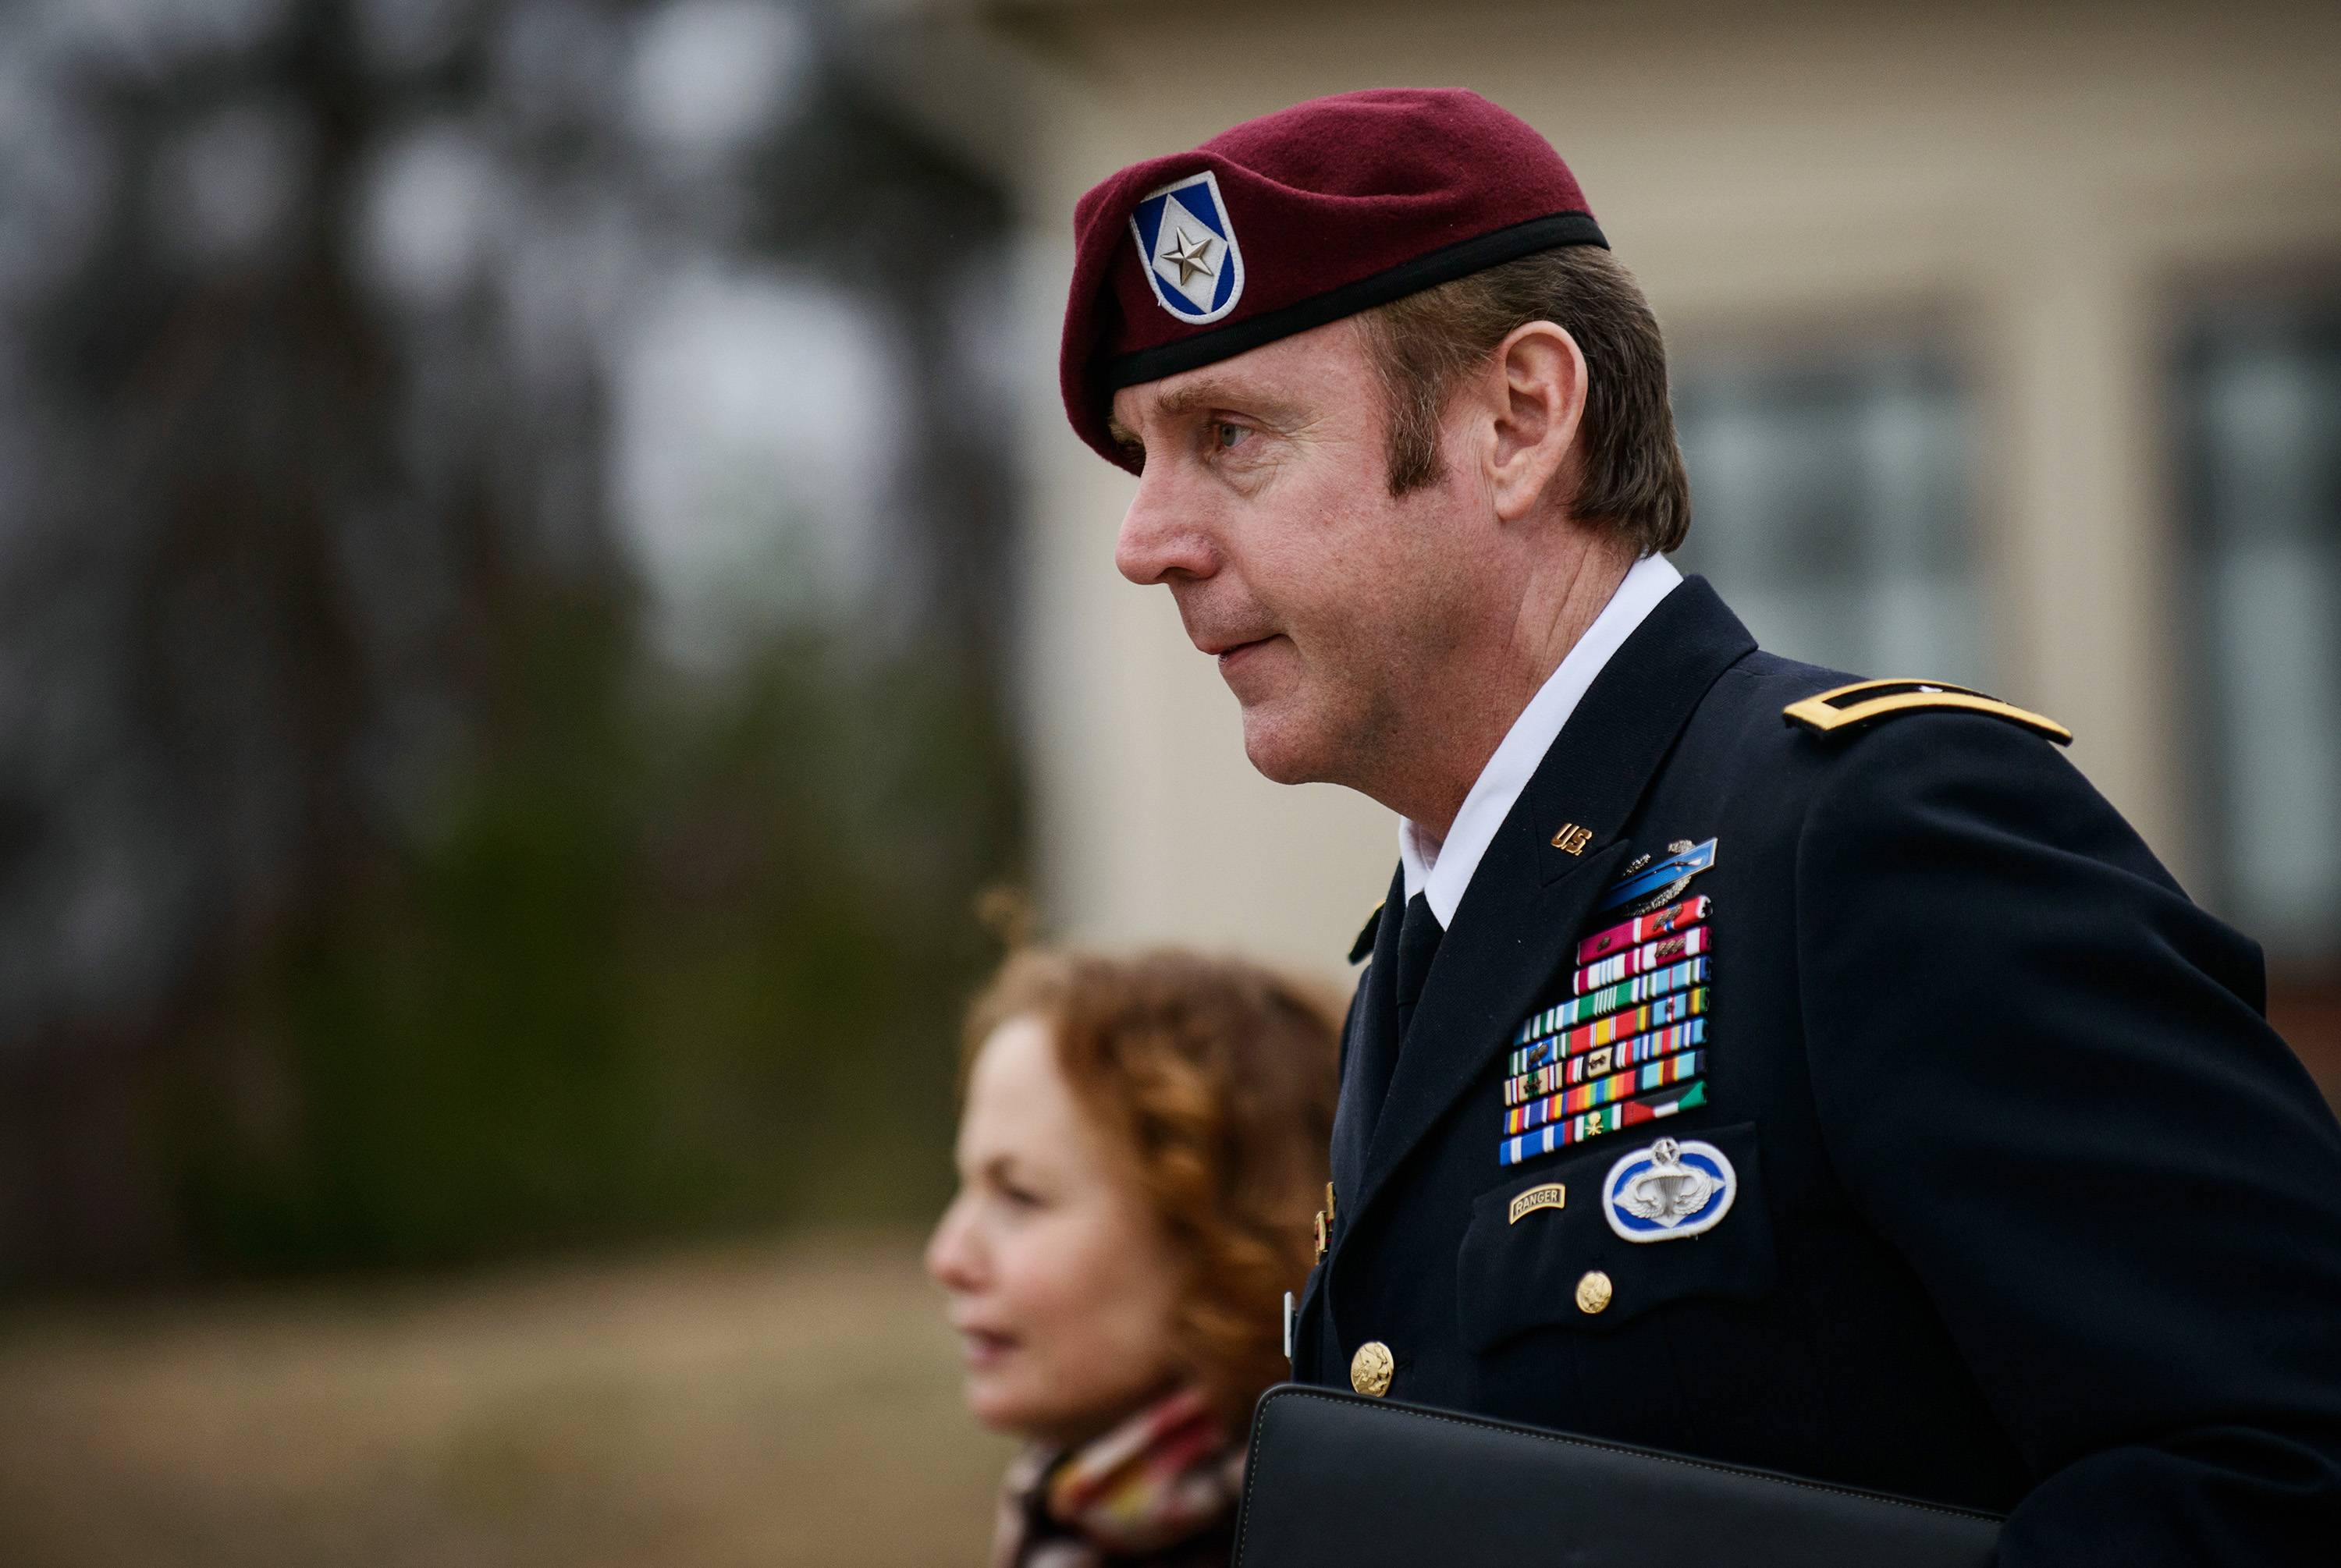 Brig. Gen. Jeffrey Sinclair was a rising star revered by both his superiors as well as those he commanded on the battlefield. Now he stands accused of sexual assault.